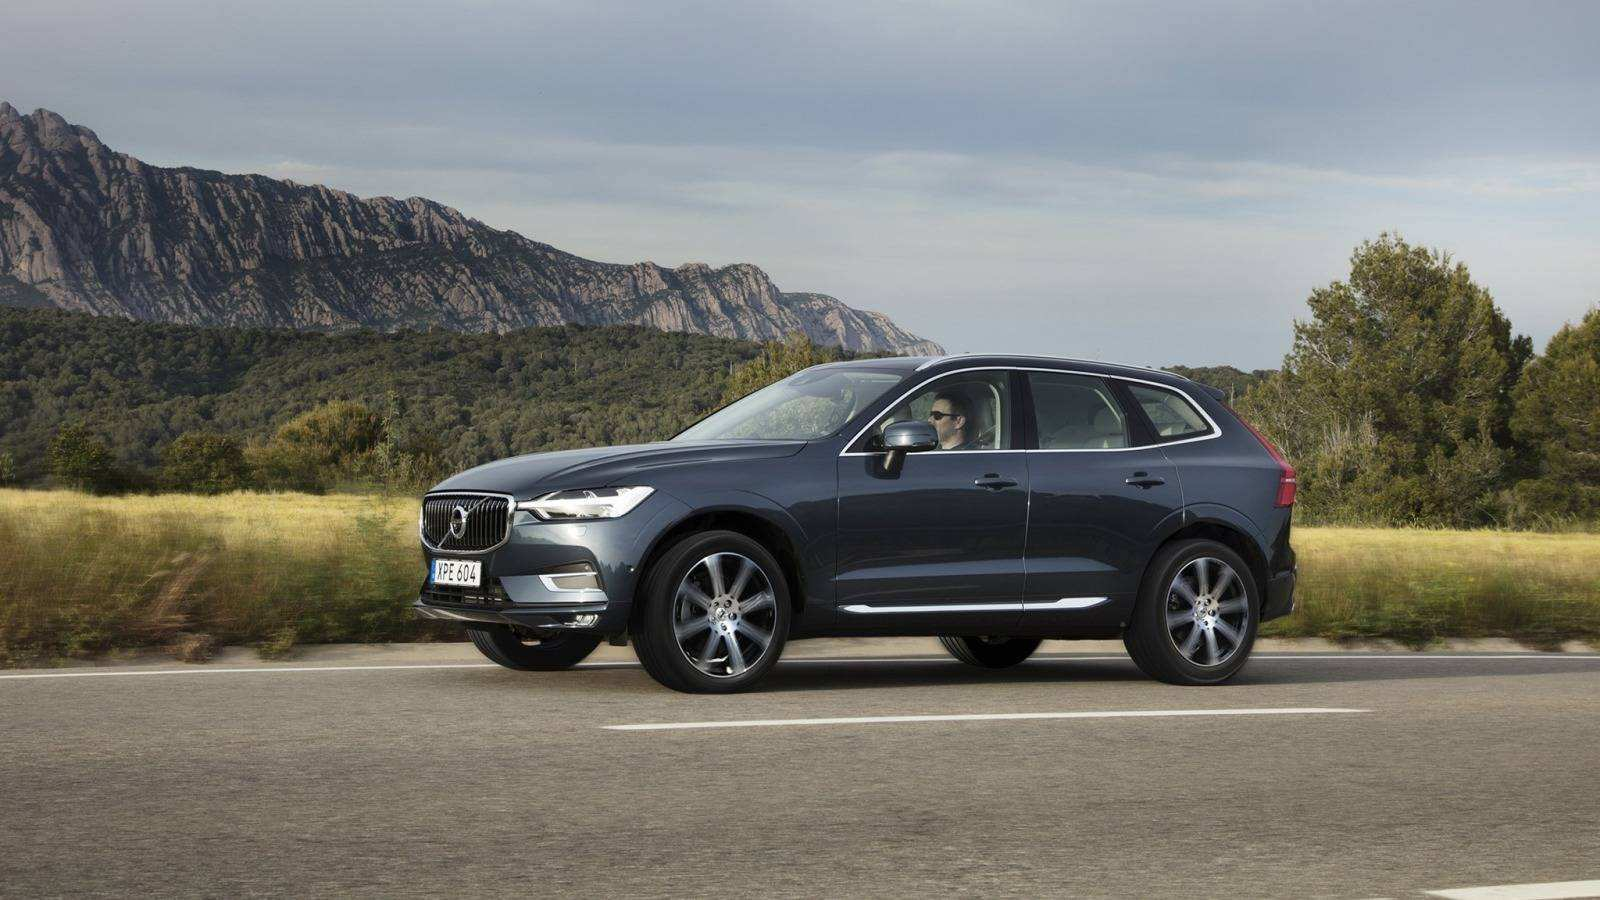 56 All New Best Volvo Plug In 2019 Redesign Price And Review New Review by Best Volvo Plug In 2019 Redesign Price And Review